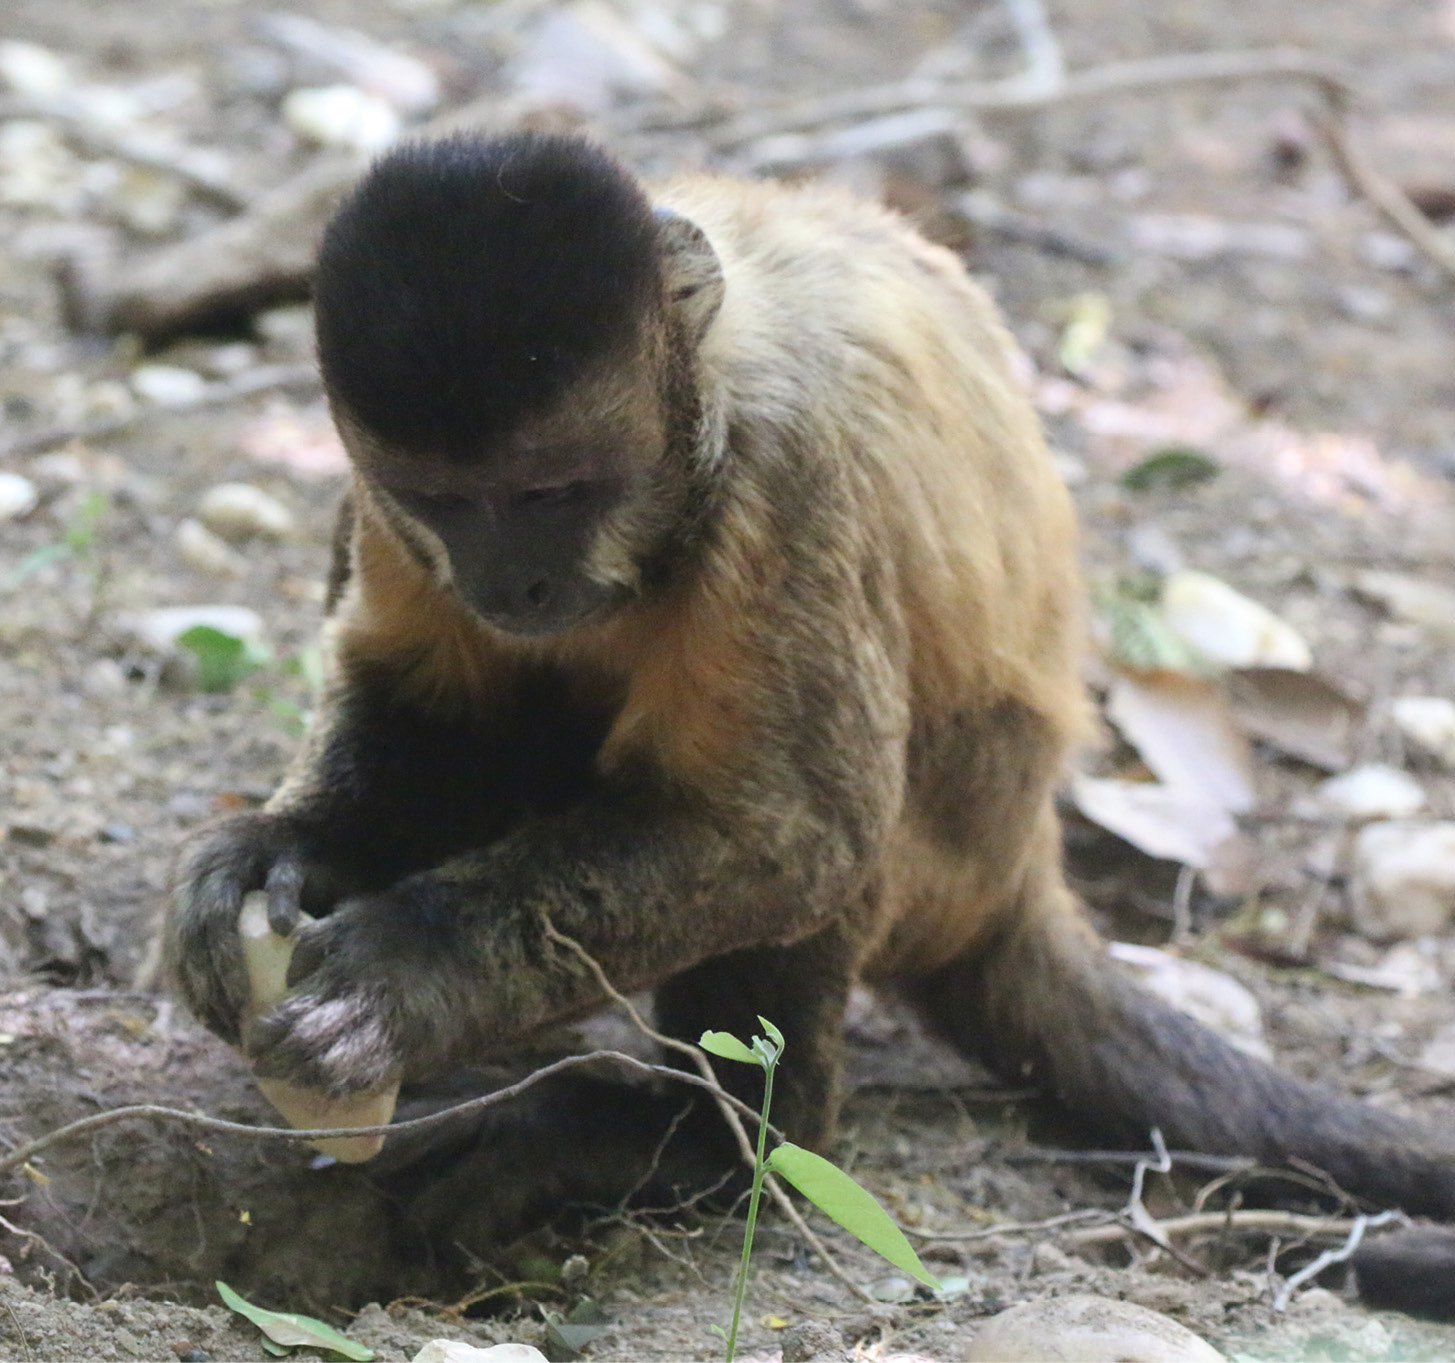 Certain primate populations have also proven adept at using stone technology. Here, capuchins use stone implements to dig a hole (ABOVE) and crack open a cashew nut (BELOW).